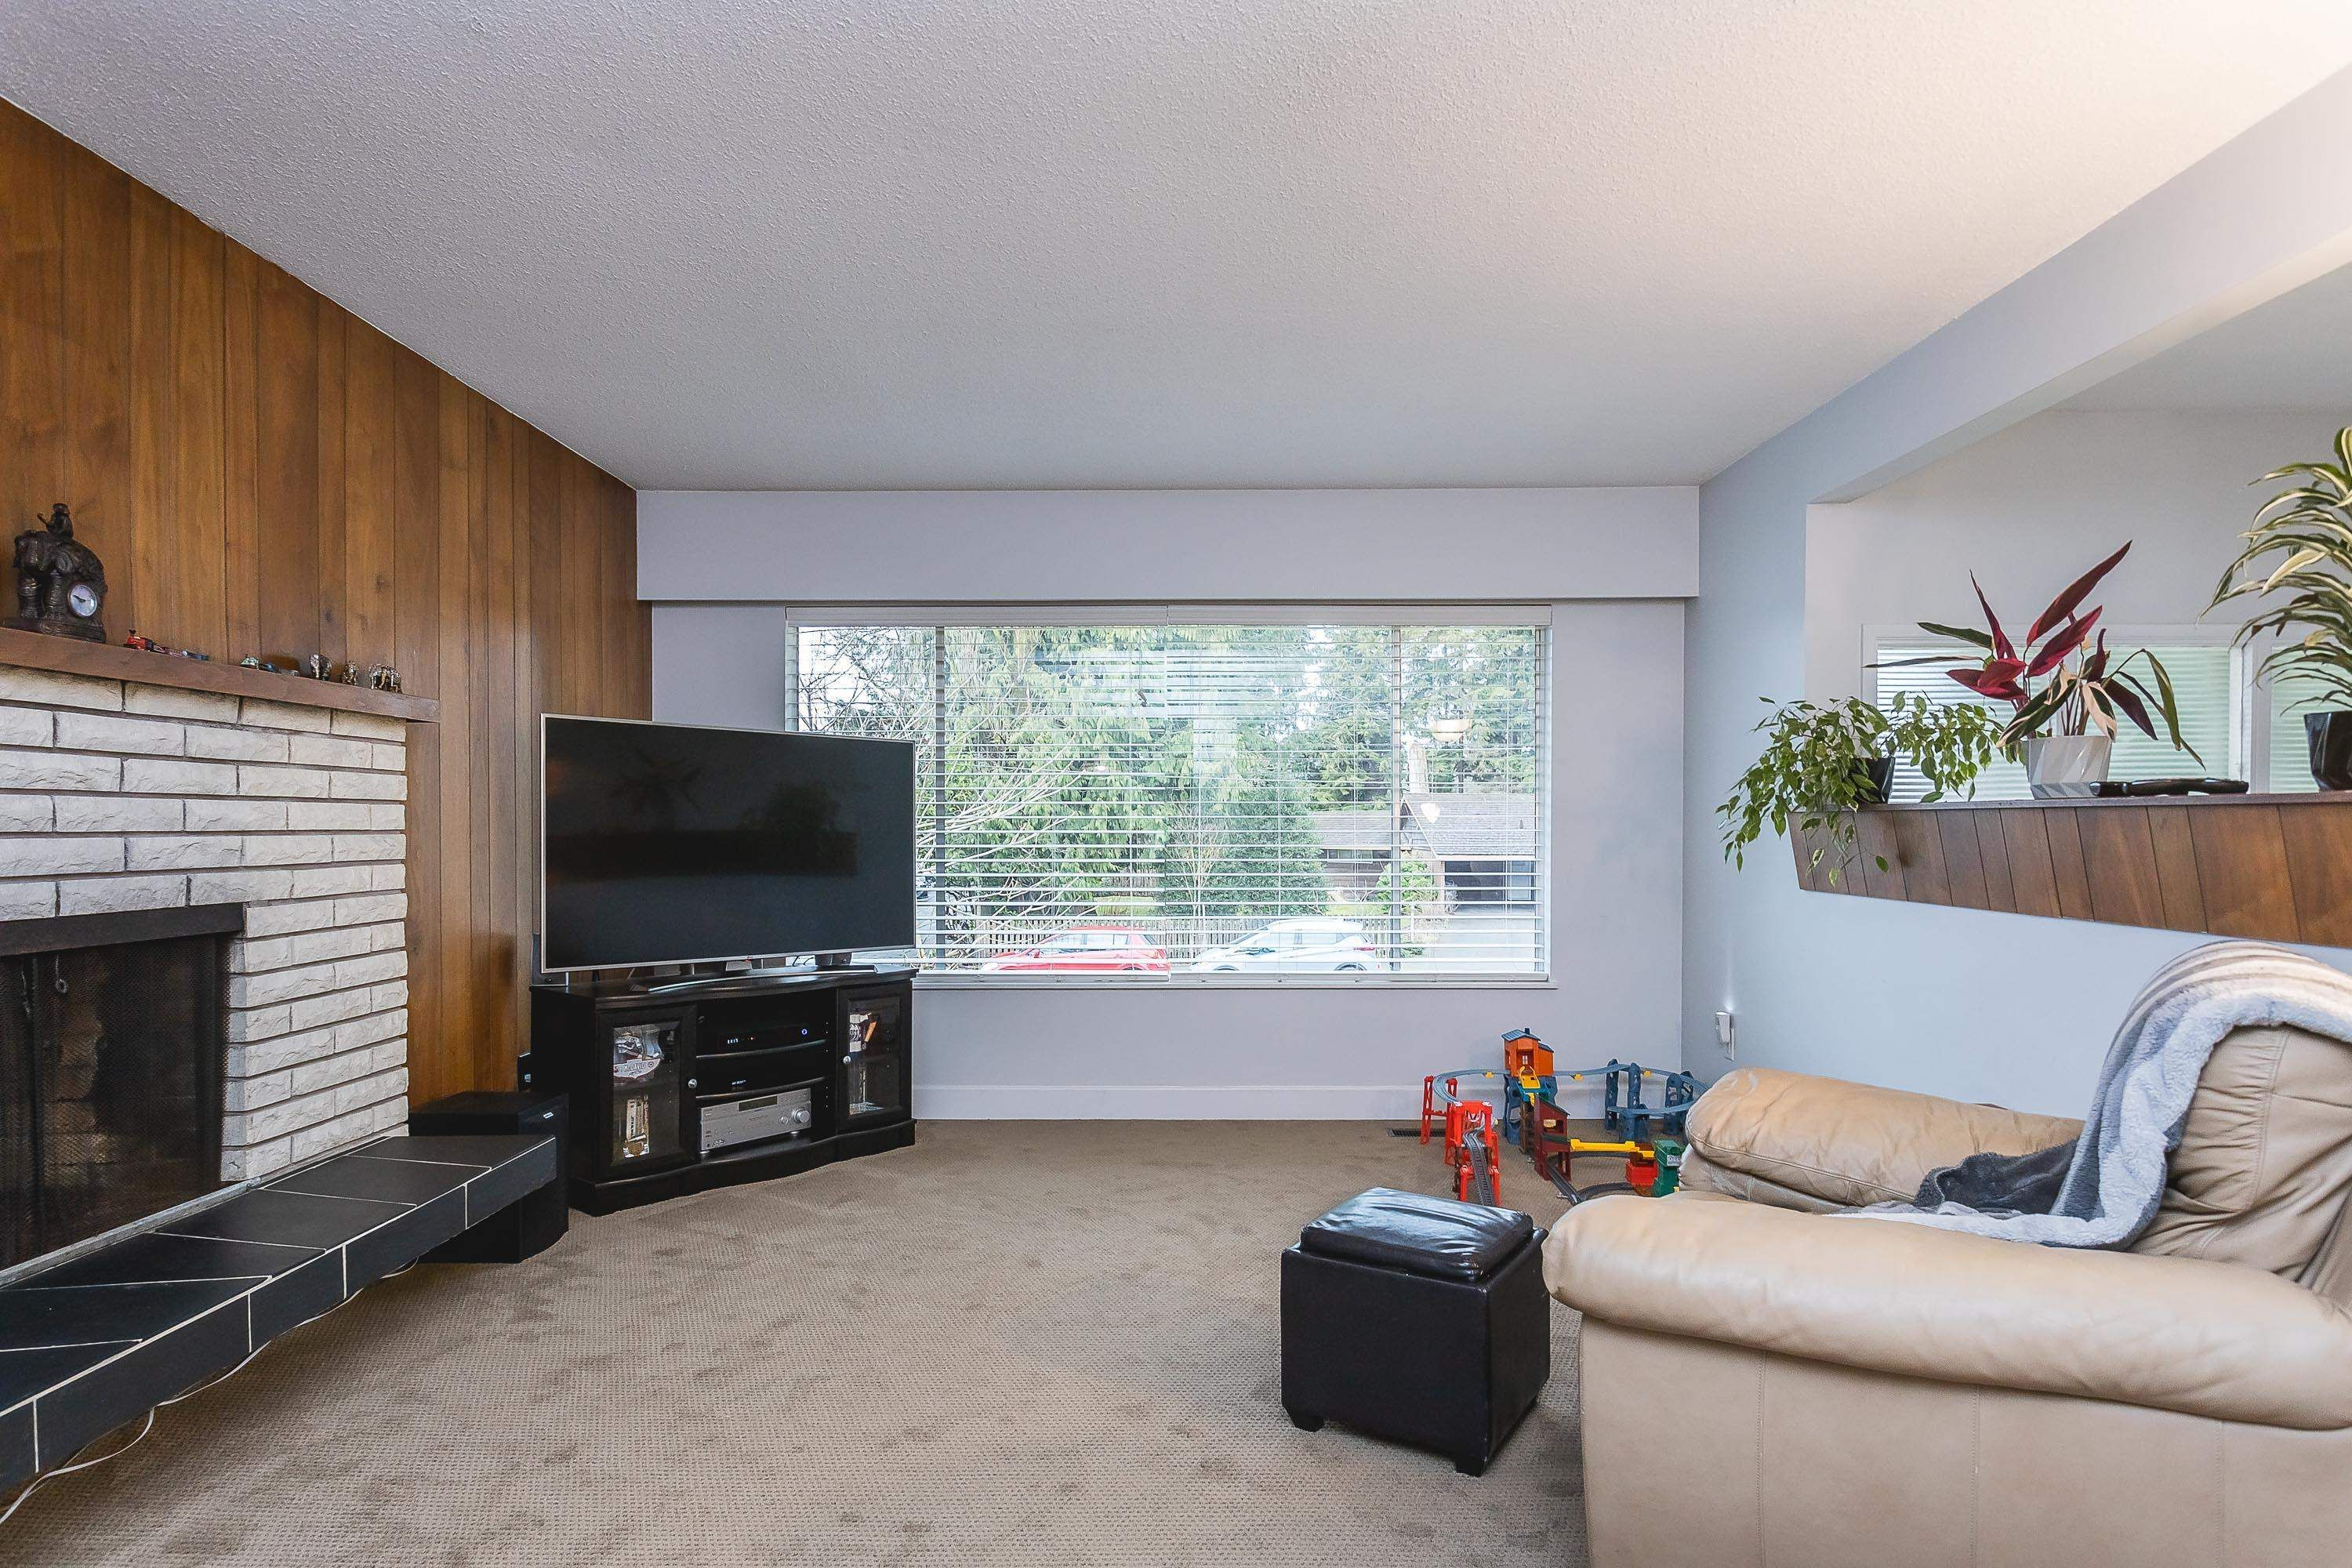 Photo 17: Photos: 3260 ULSTER Street in Port Coquitlam: Lincoln Park PQ House for sale : MLS®# R2613283